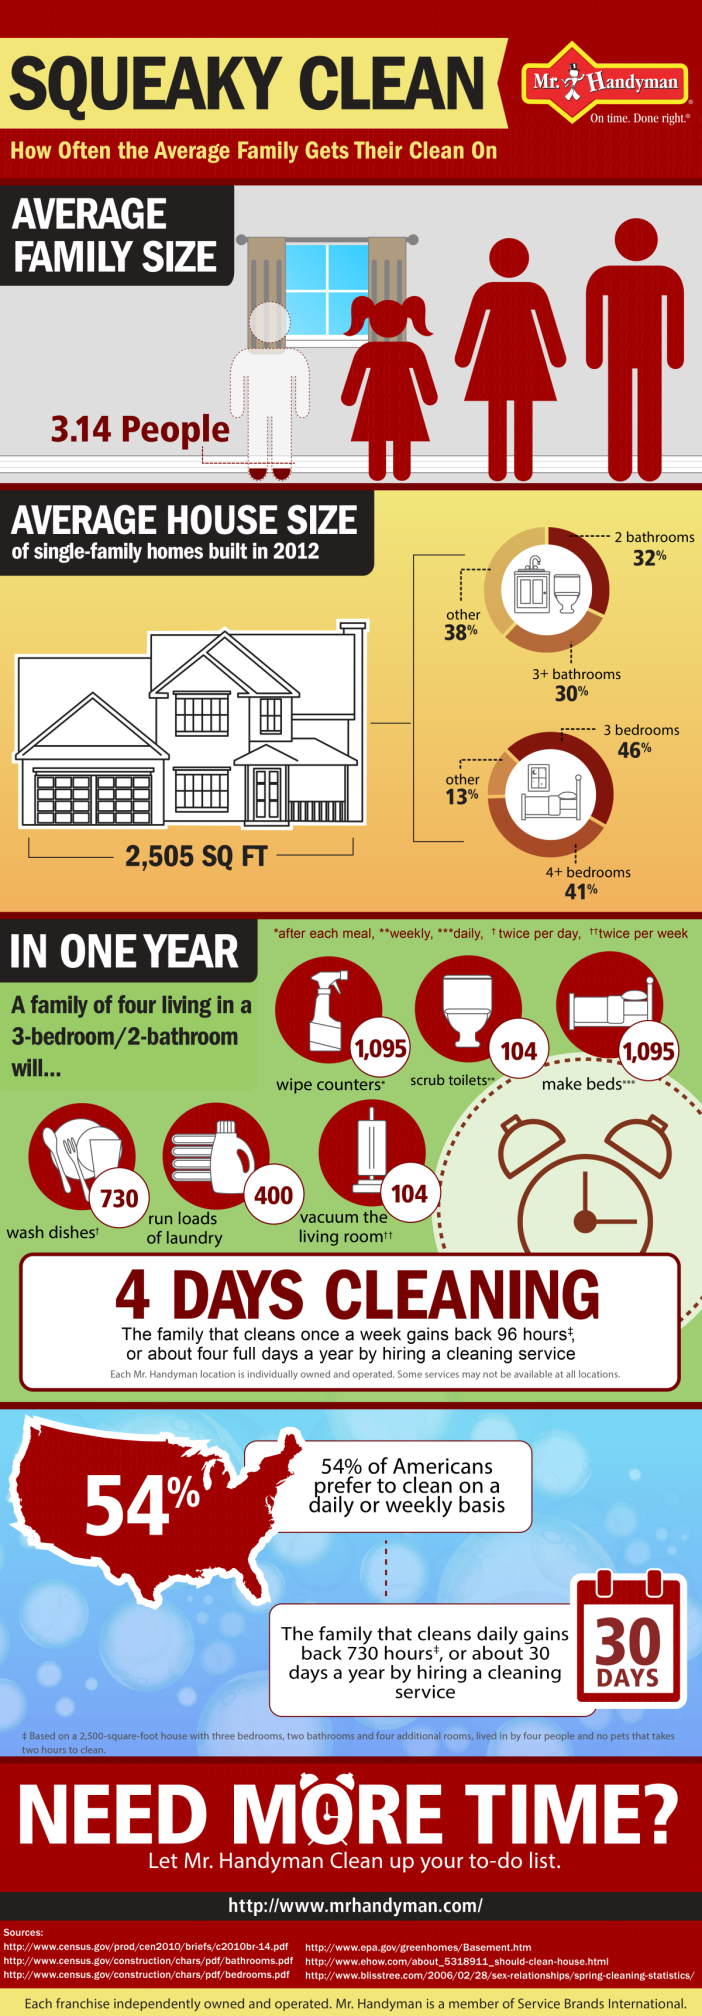 how often the average family gets their clean on infographic